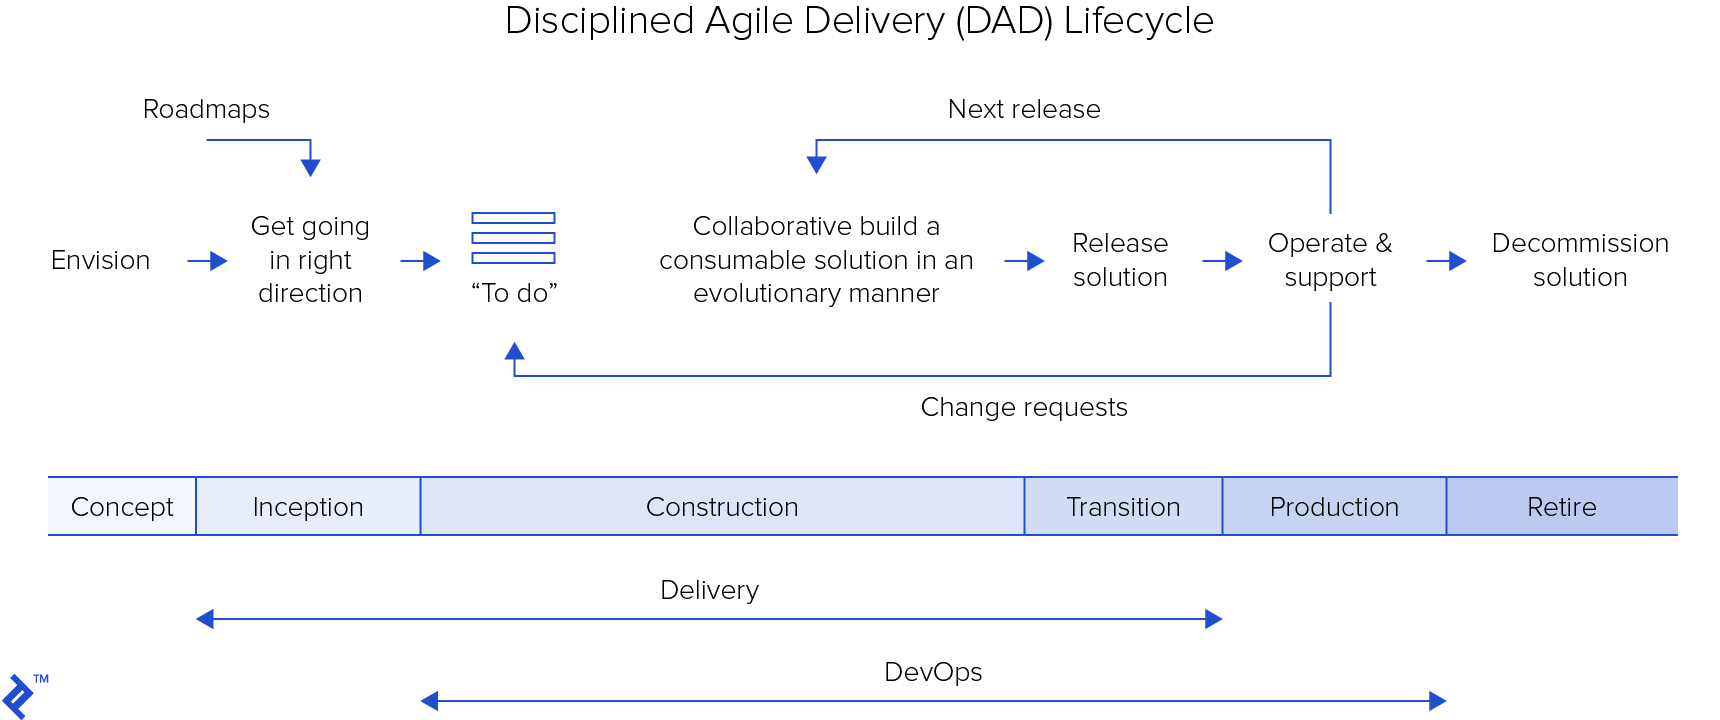 Disciplined agile delivery (DAD) lifecycle